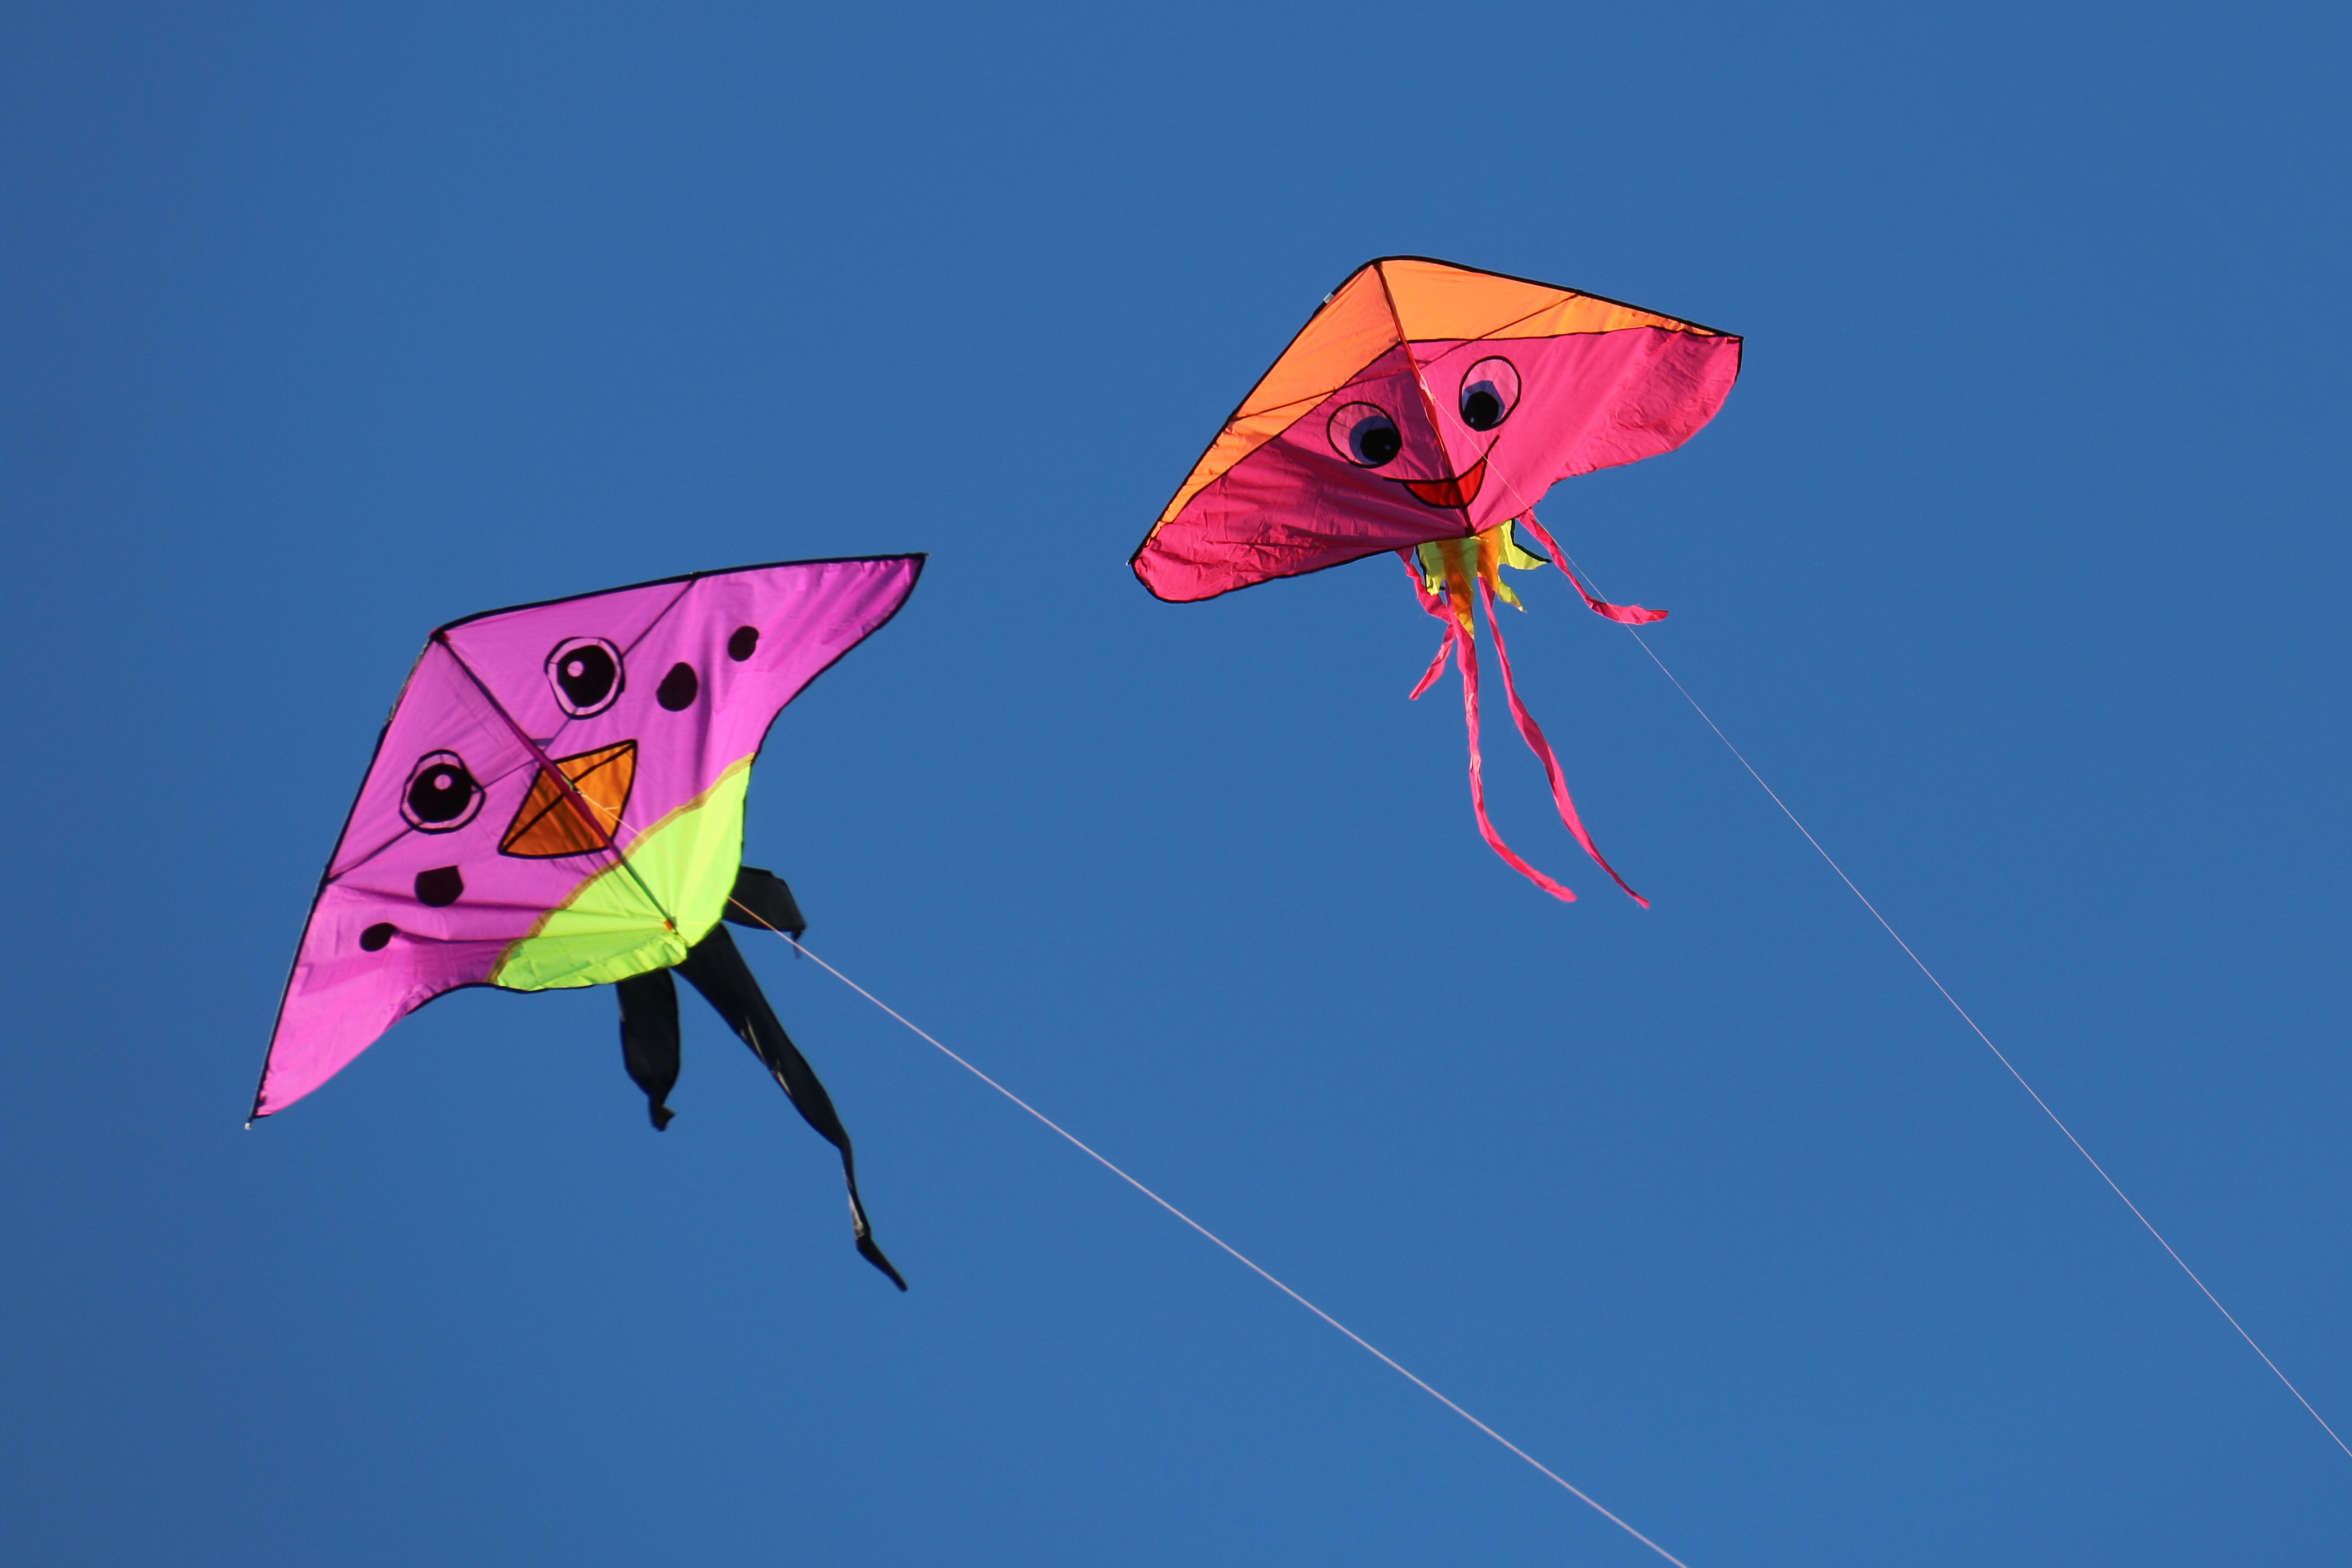 low angle photography of two pink and orange kites